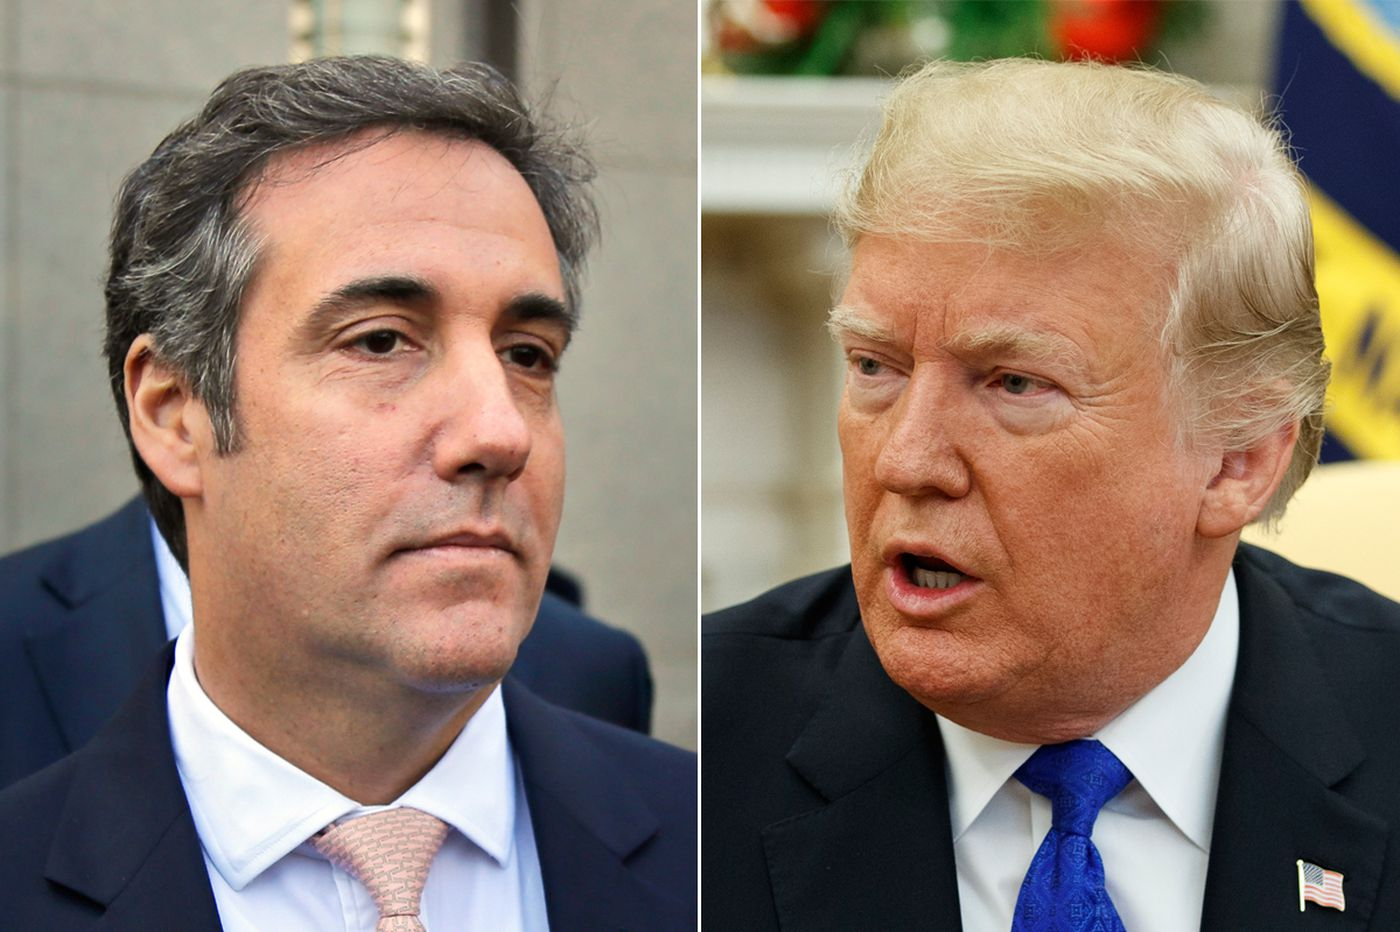 Ex-Trump lawyer Michael Cohen gets 3 years in prison, National Enquirer admits payment was to influence election